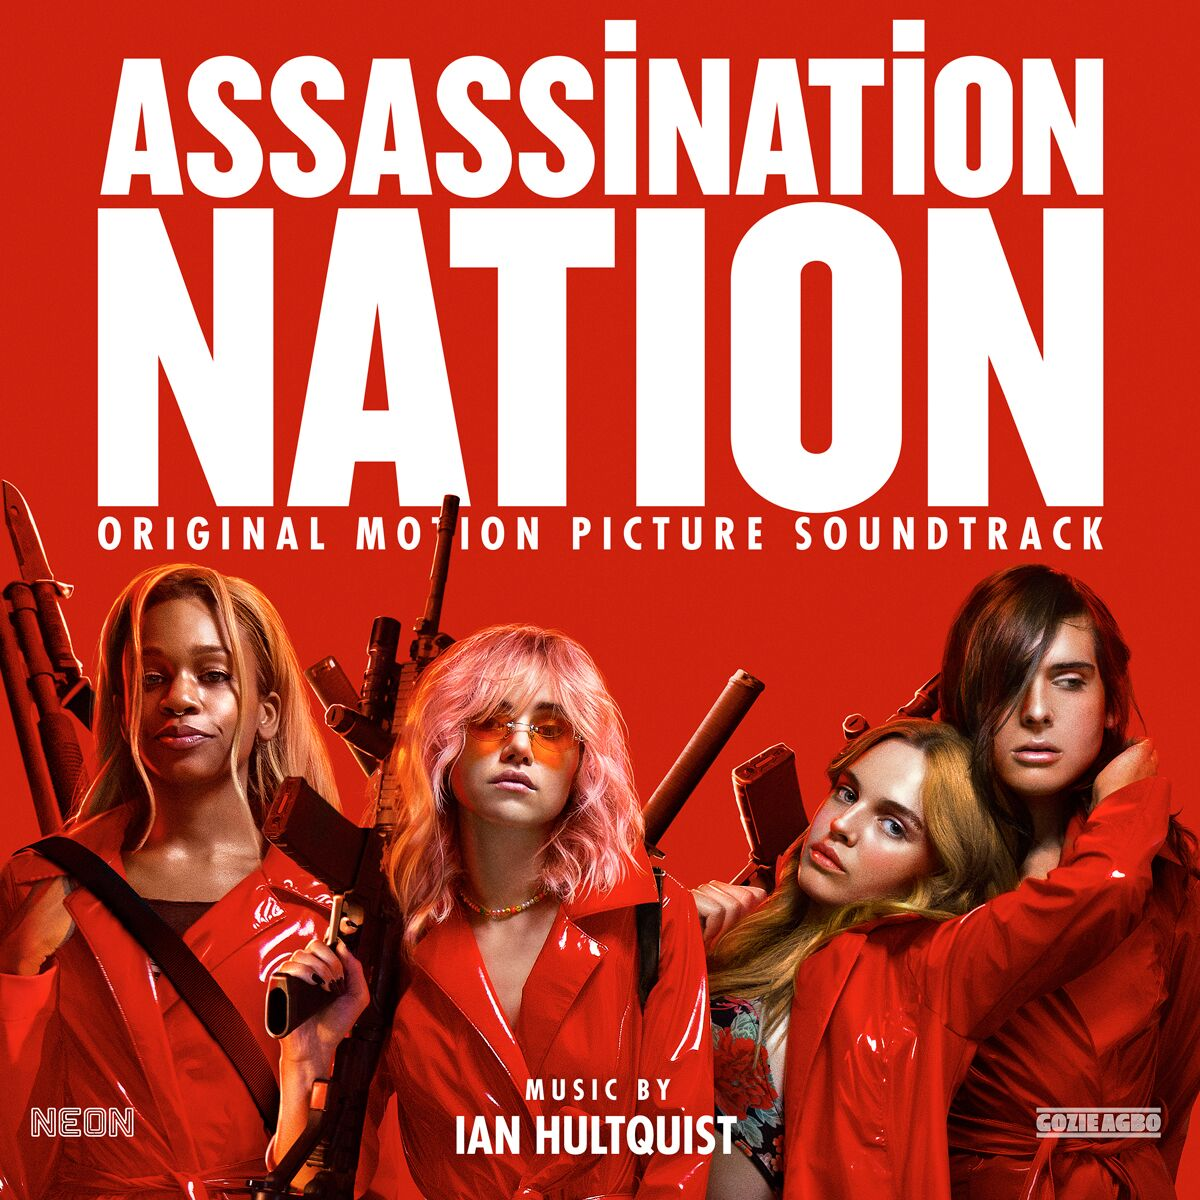 LAKESHORE RELEASES 'ASSASSINATION NATION' – ORIGINAL MOTION PICTURE SOUNDTRACK